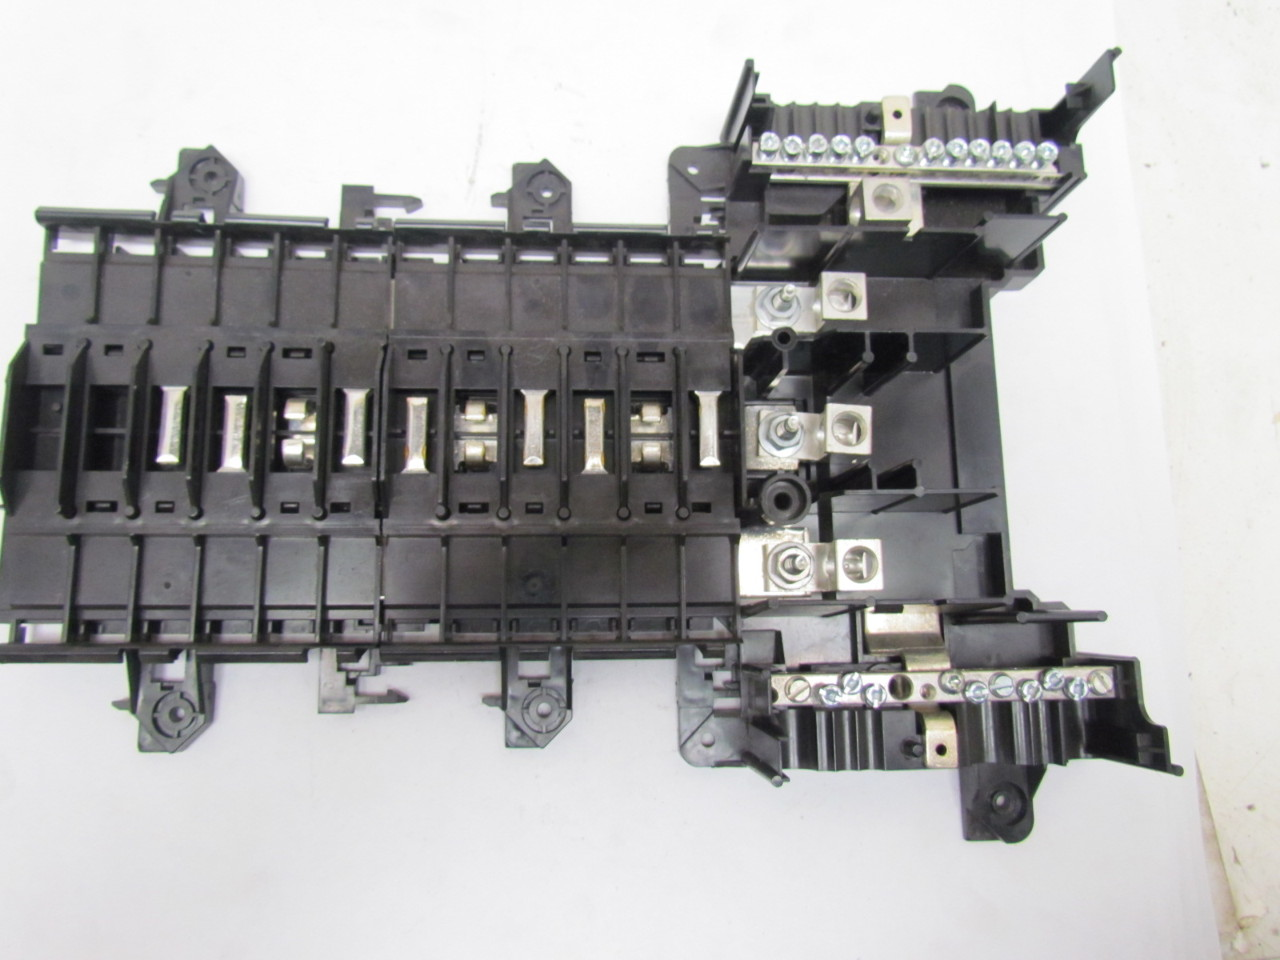 Sale 3565430 Ip66 Waterproof Electrical Outlets Weatherproof Switch Socket 10a 15a 16a furthermore Hydraulic Breaker Hammer moreover 9677727 besides Expresssch further 5008 Falkon. on breaker box parts